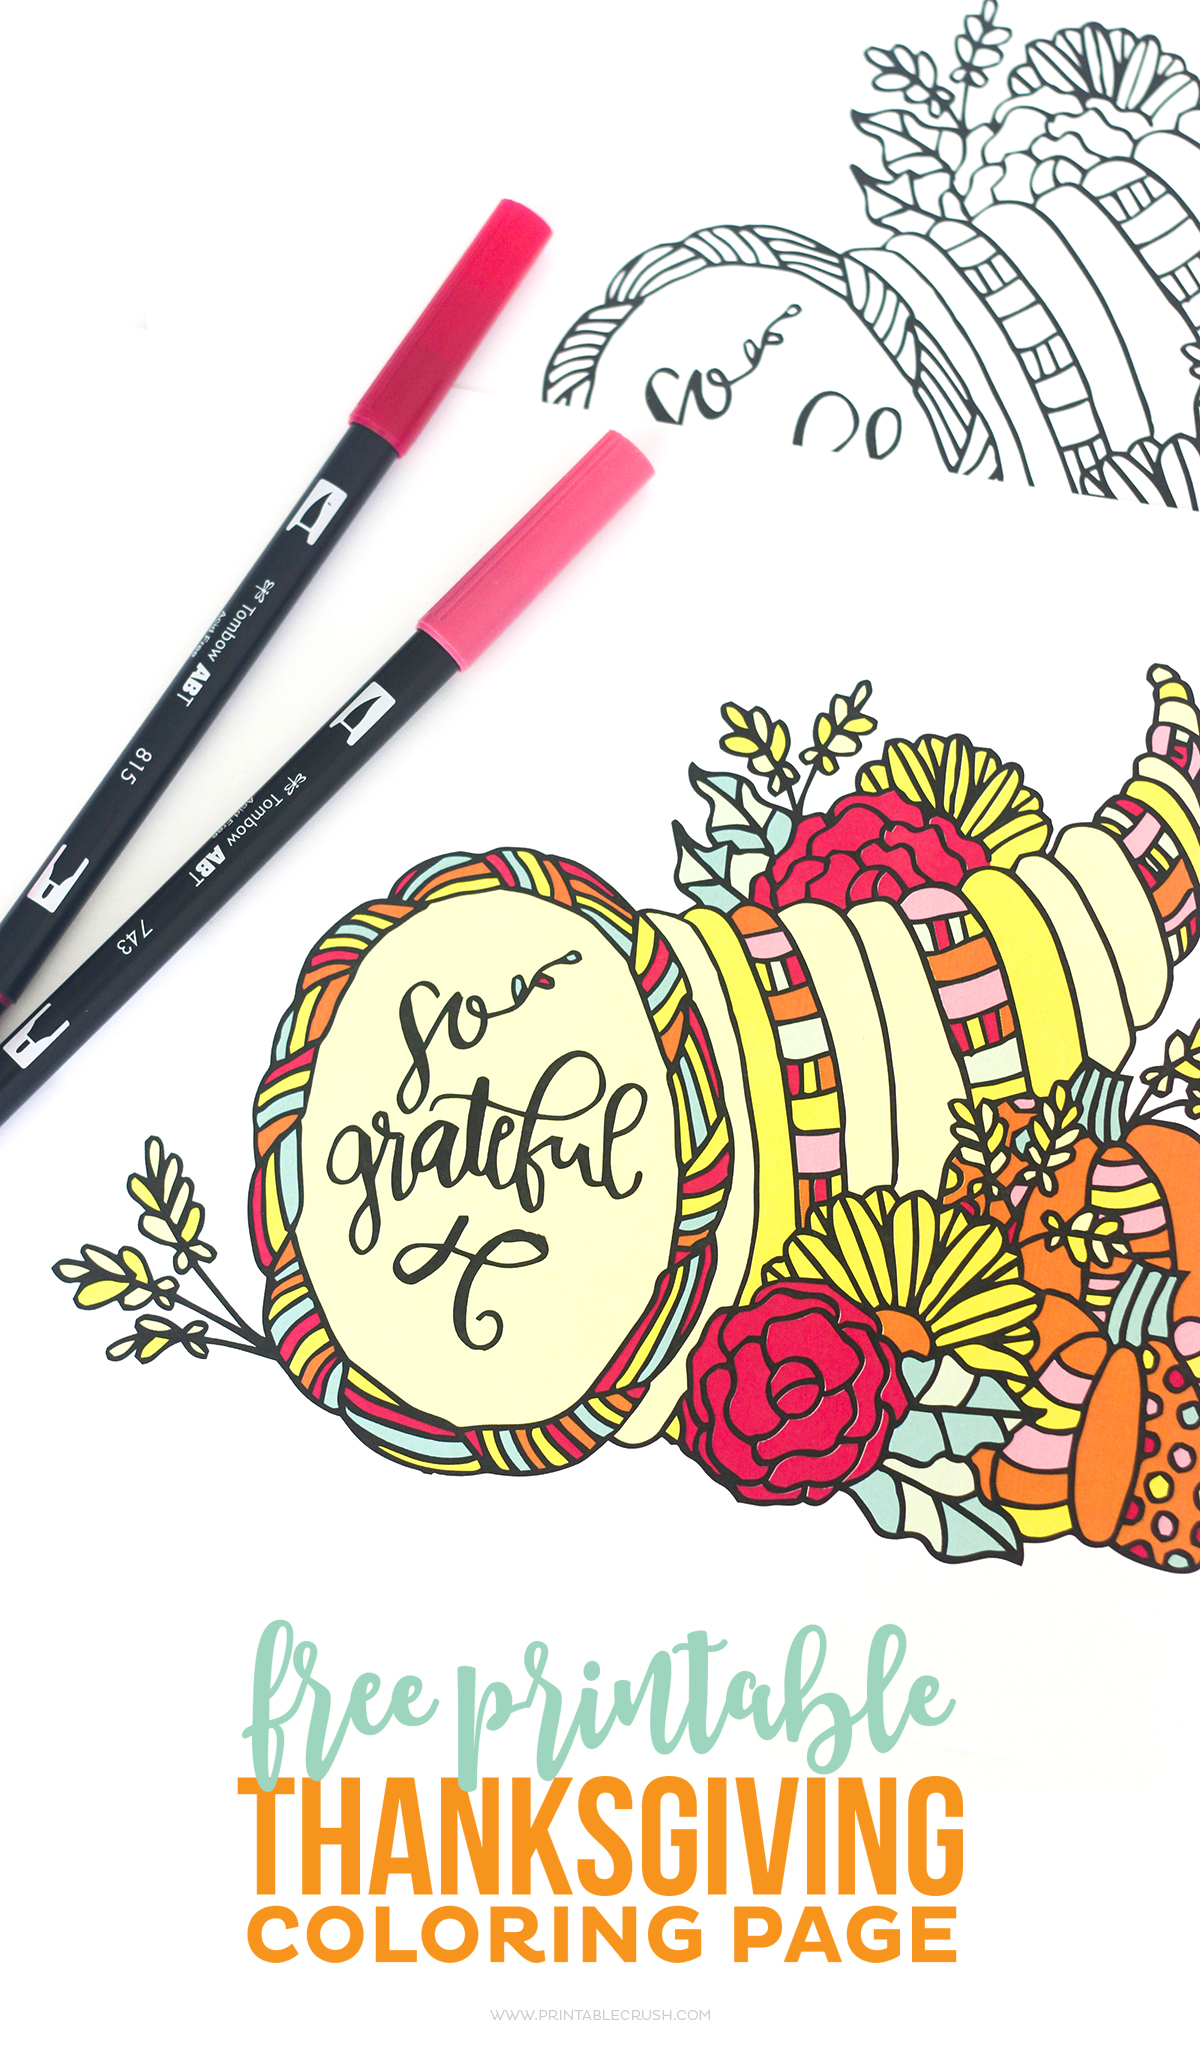 Pretty colored Thanksgiving Coloring Pages on white background with red and pink pens